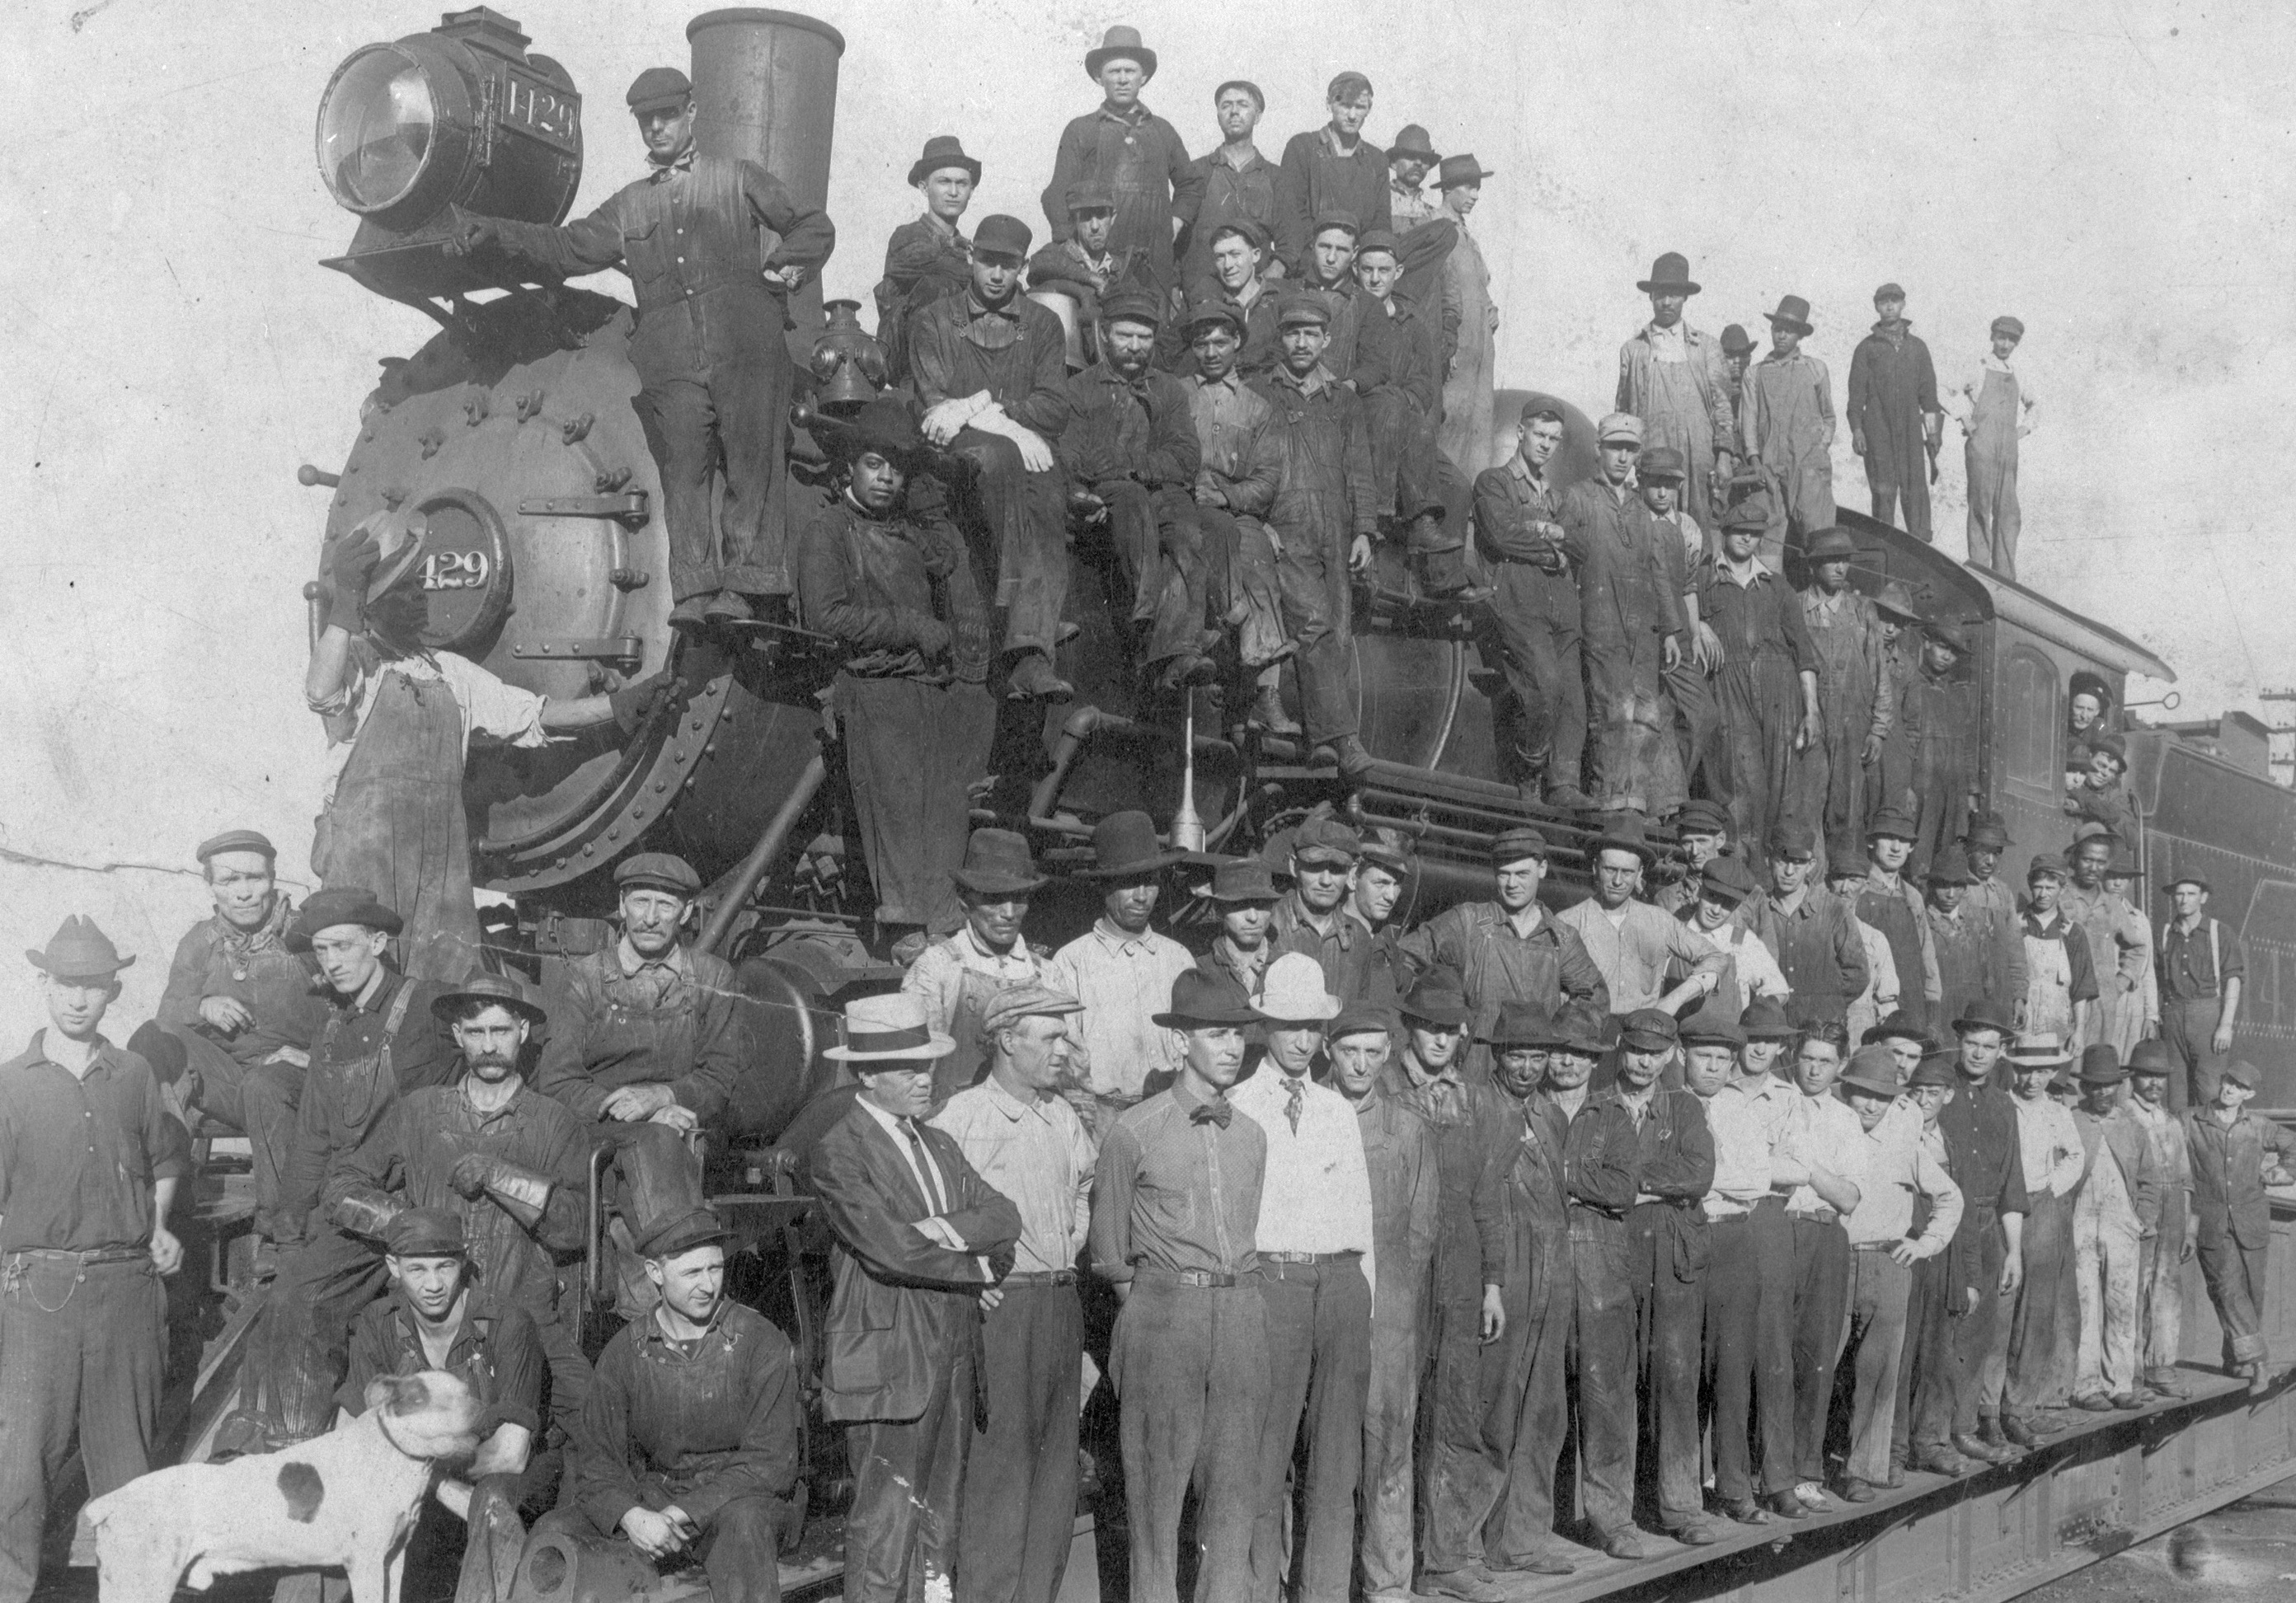 Railroaded: The Industry That Shaped Kansas Event Image